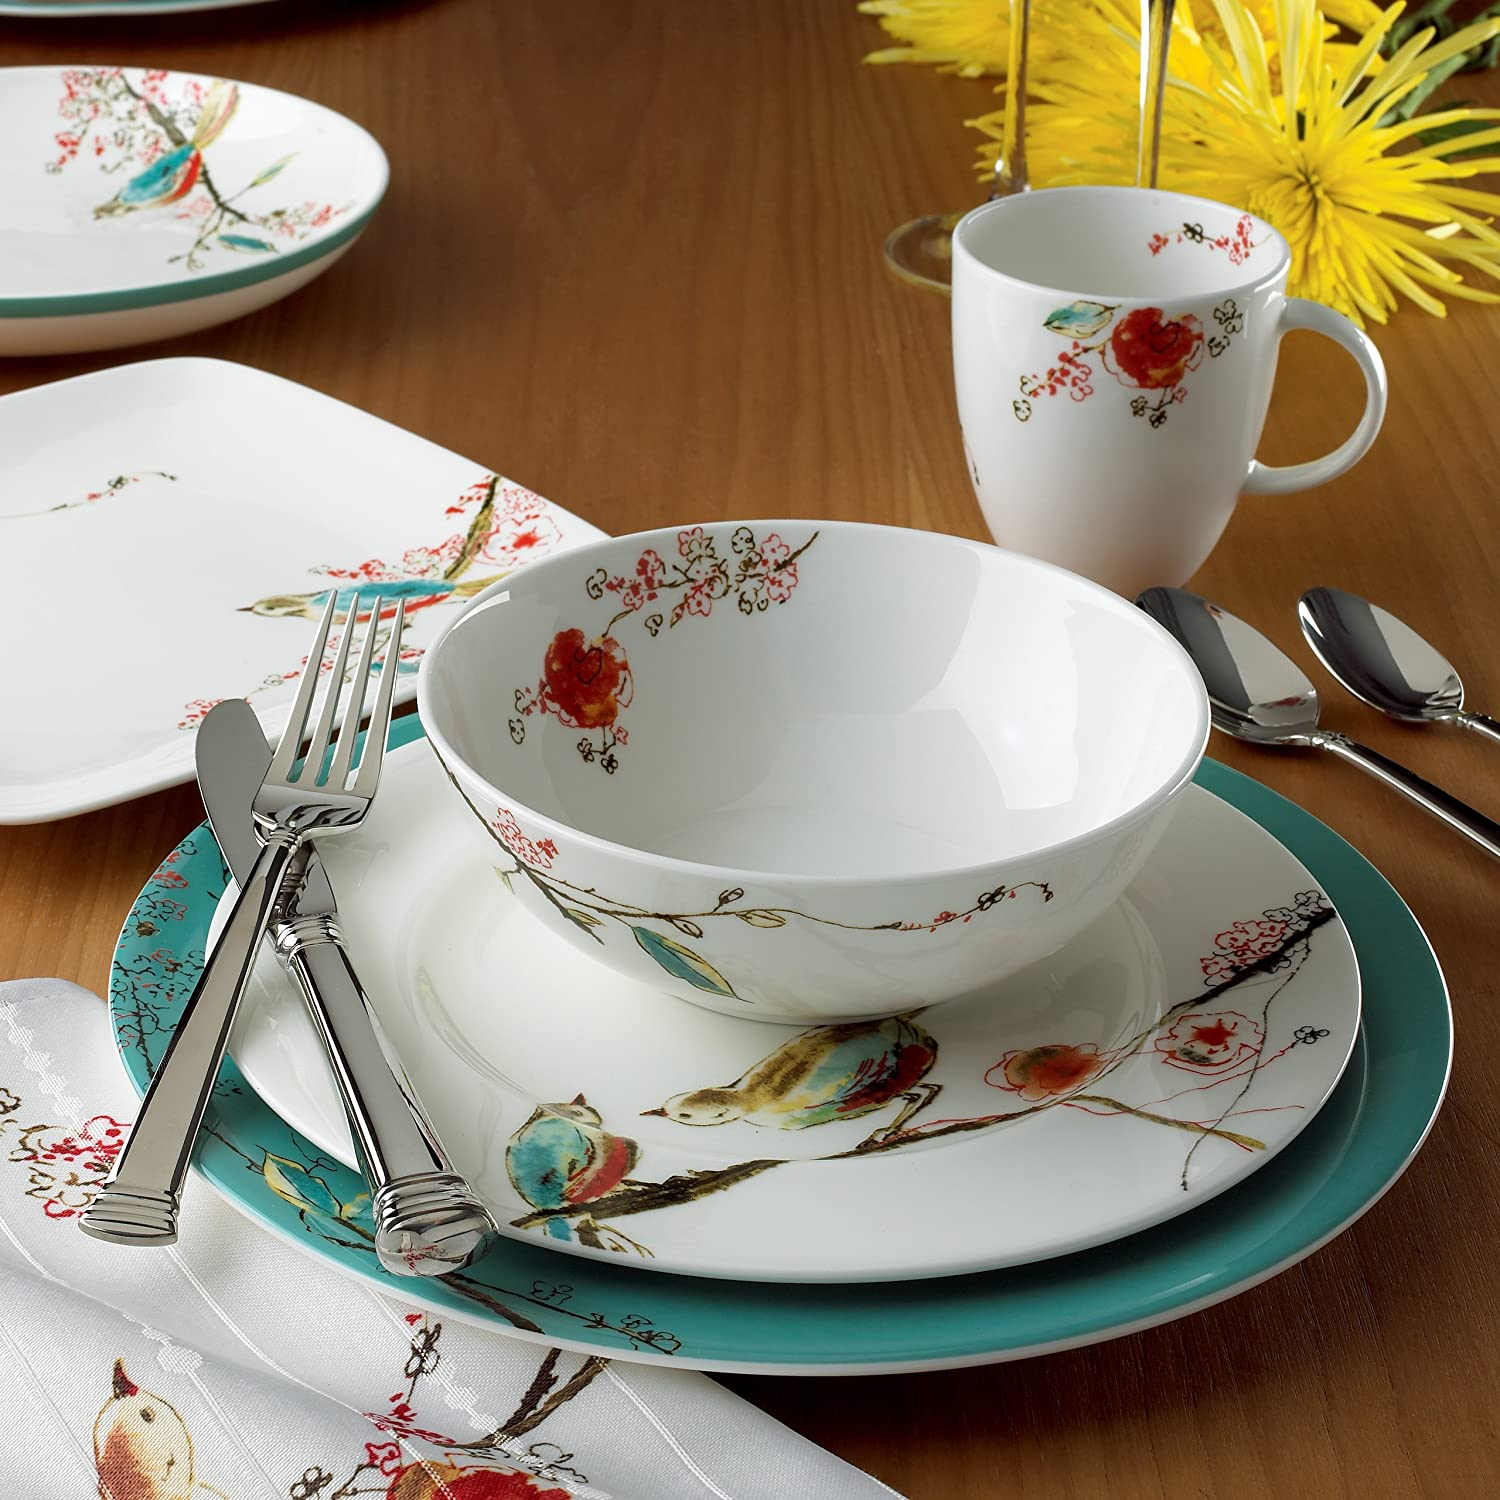 Amazon.com | Lenox Simply Fine Chirp 4-Piece Place Setting Service for 1 Dinnerware Sets Platters & Amazon.com | Lenox Simply Fine Chirp 4-Piece Place Setting Service ...